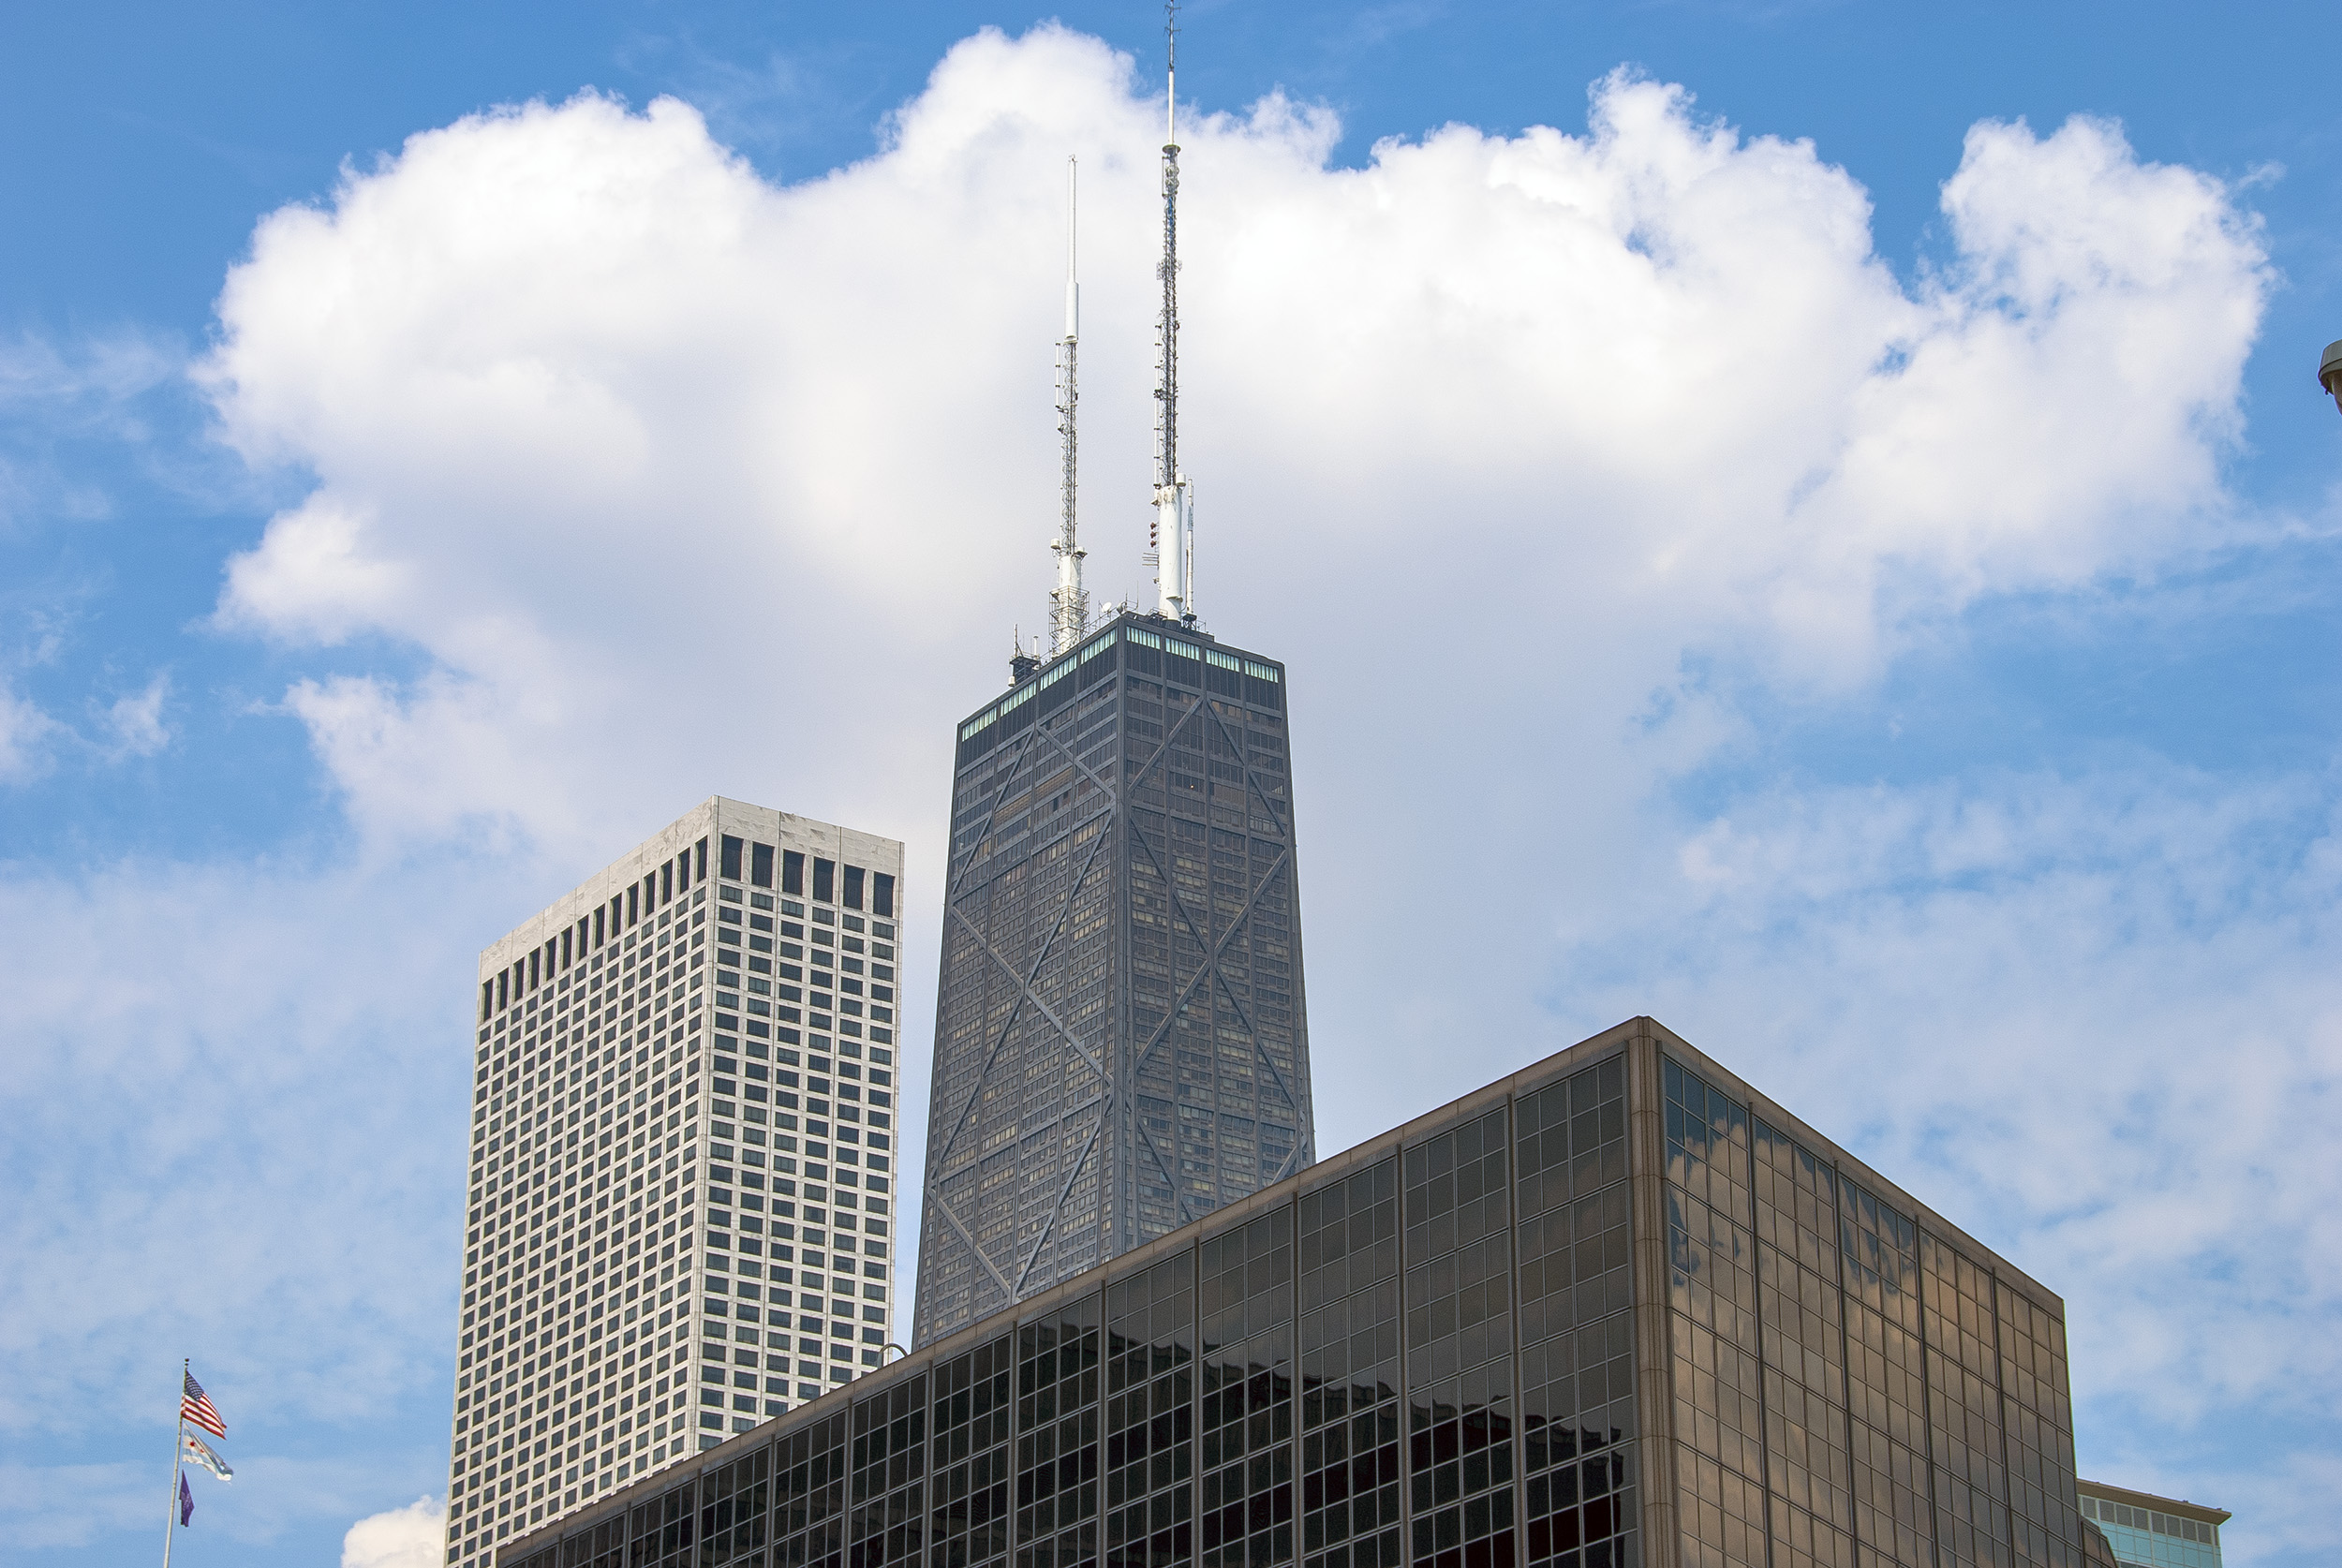 John Hancock Tower Chicago, 875 North Michigan Avenue